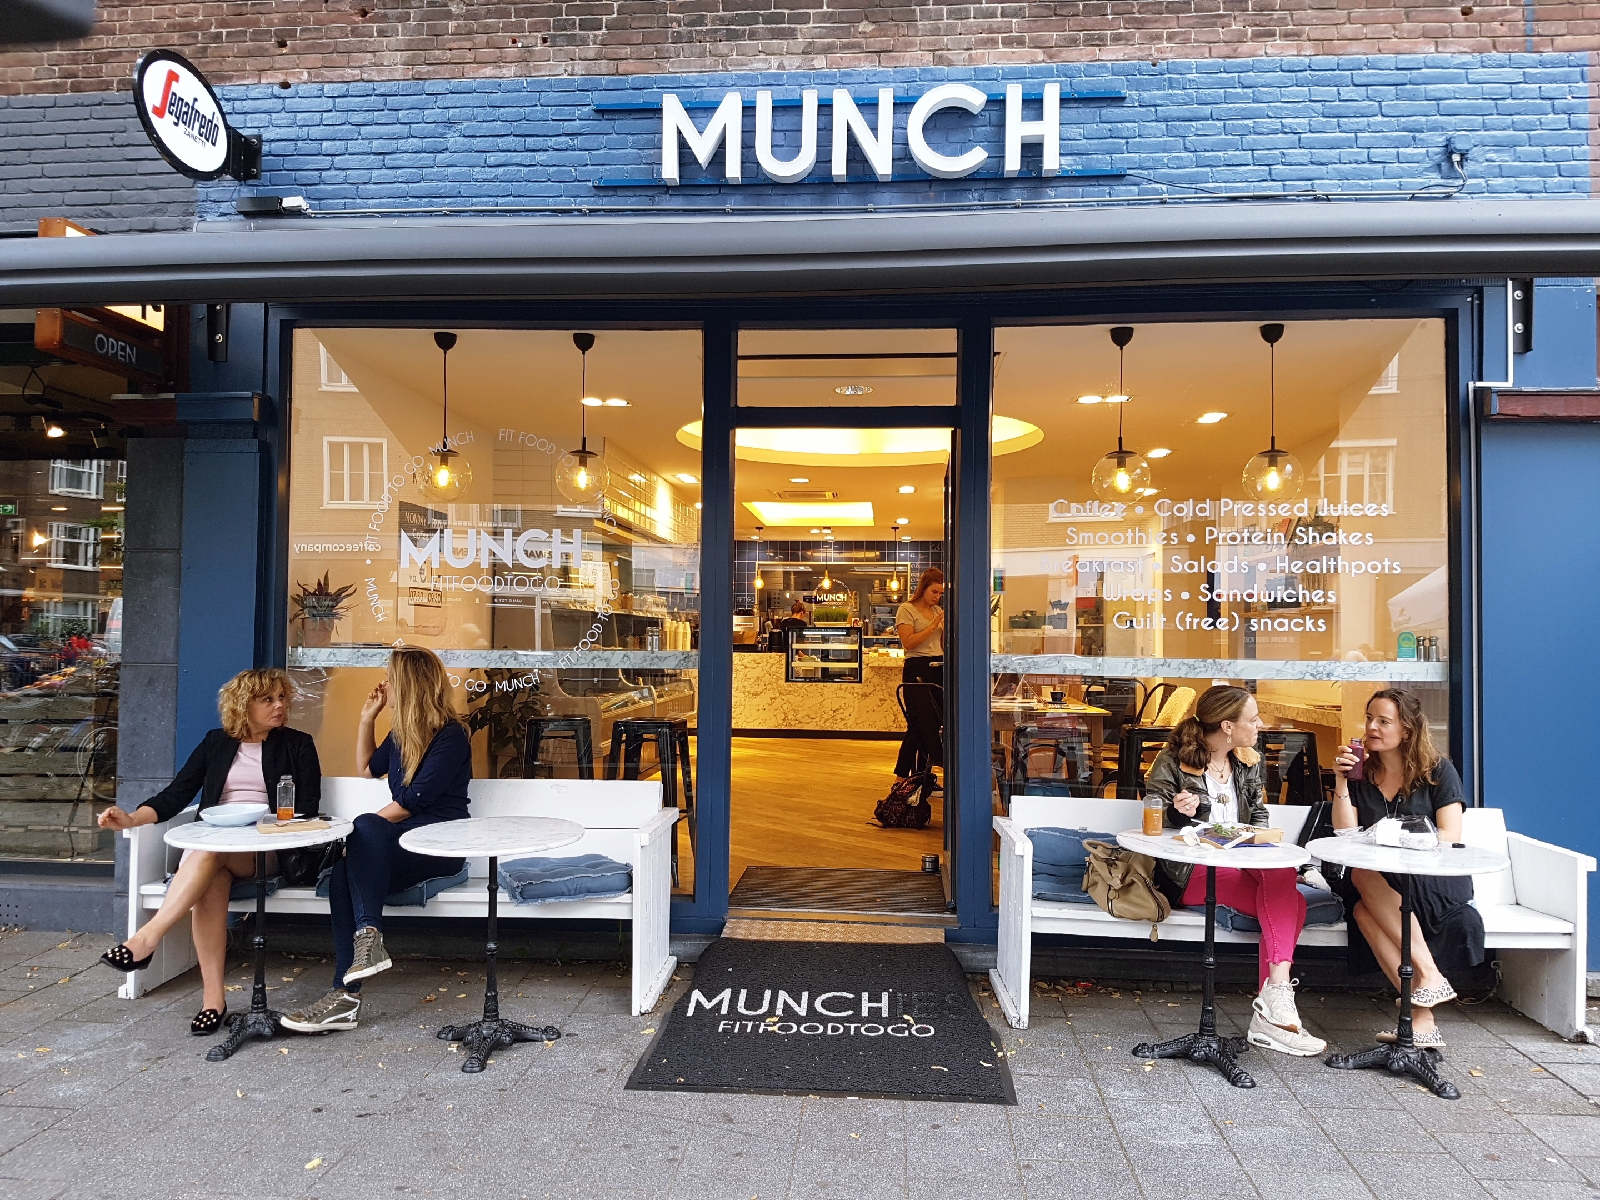 Munch fit food to go